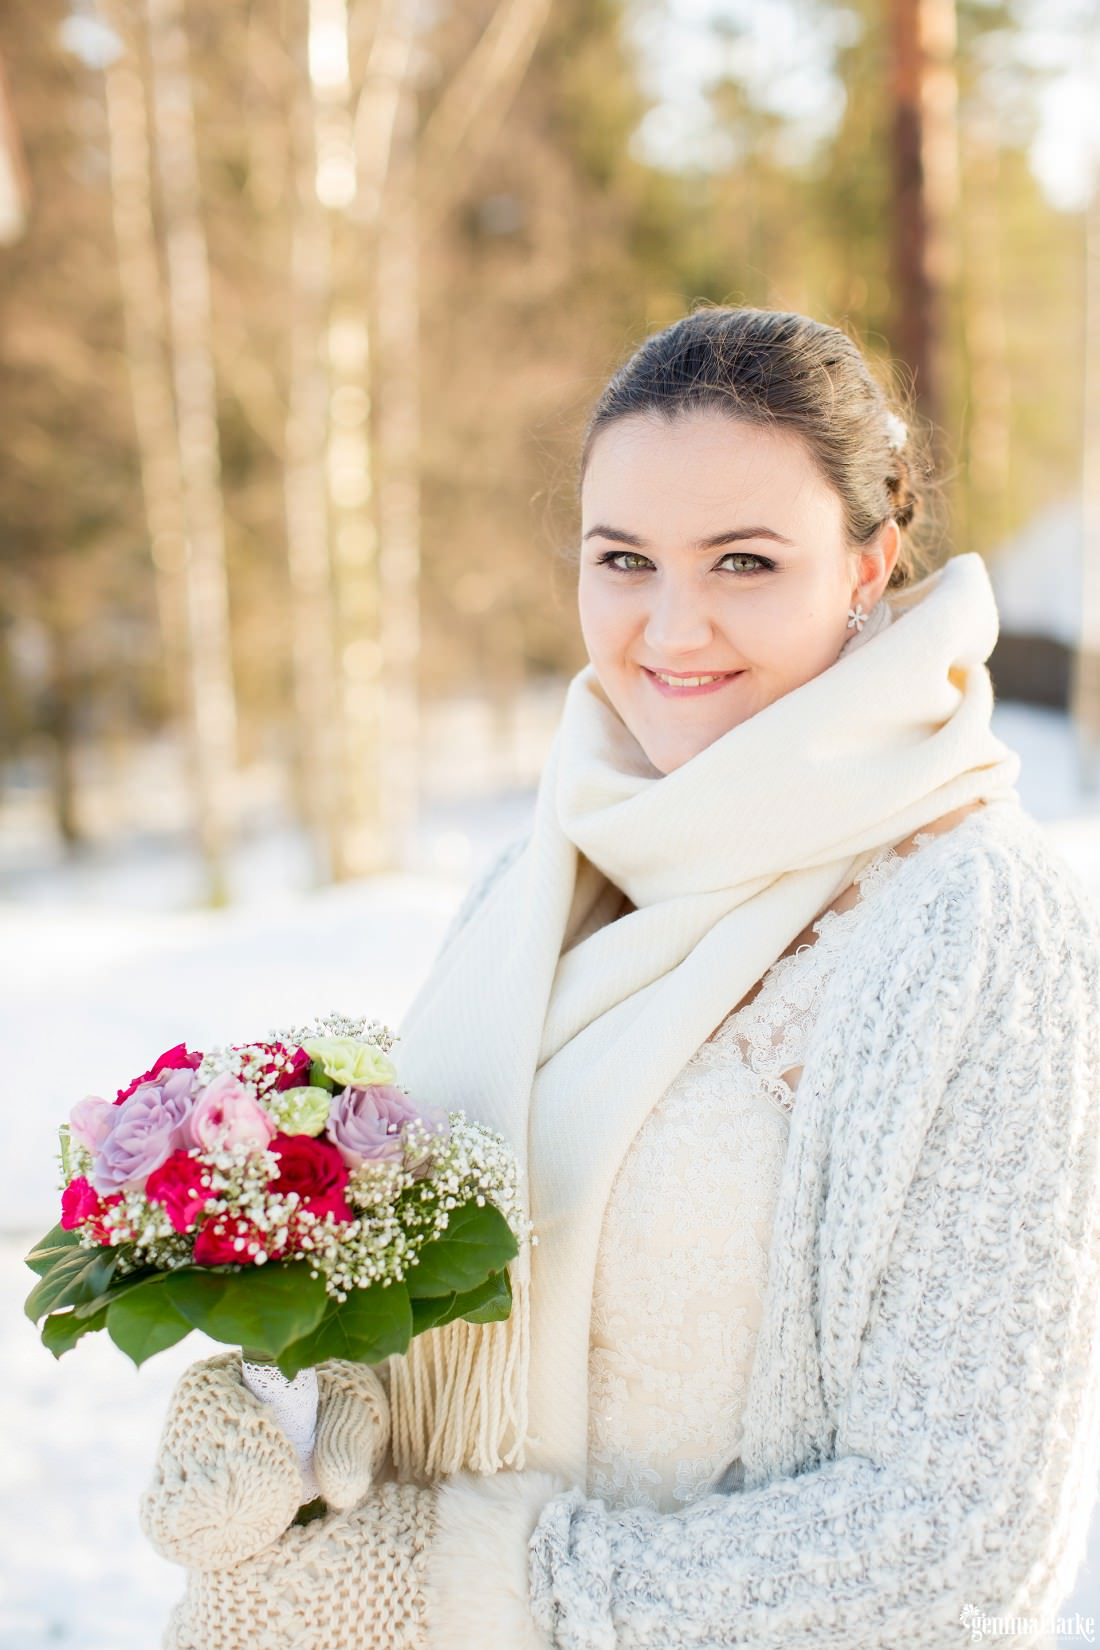 A bride in a white gown with scarf and mittens stands in the snow holding a floral bouquet